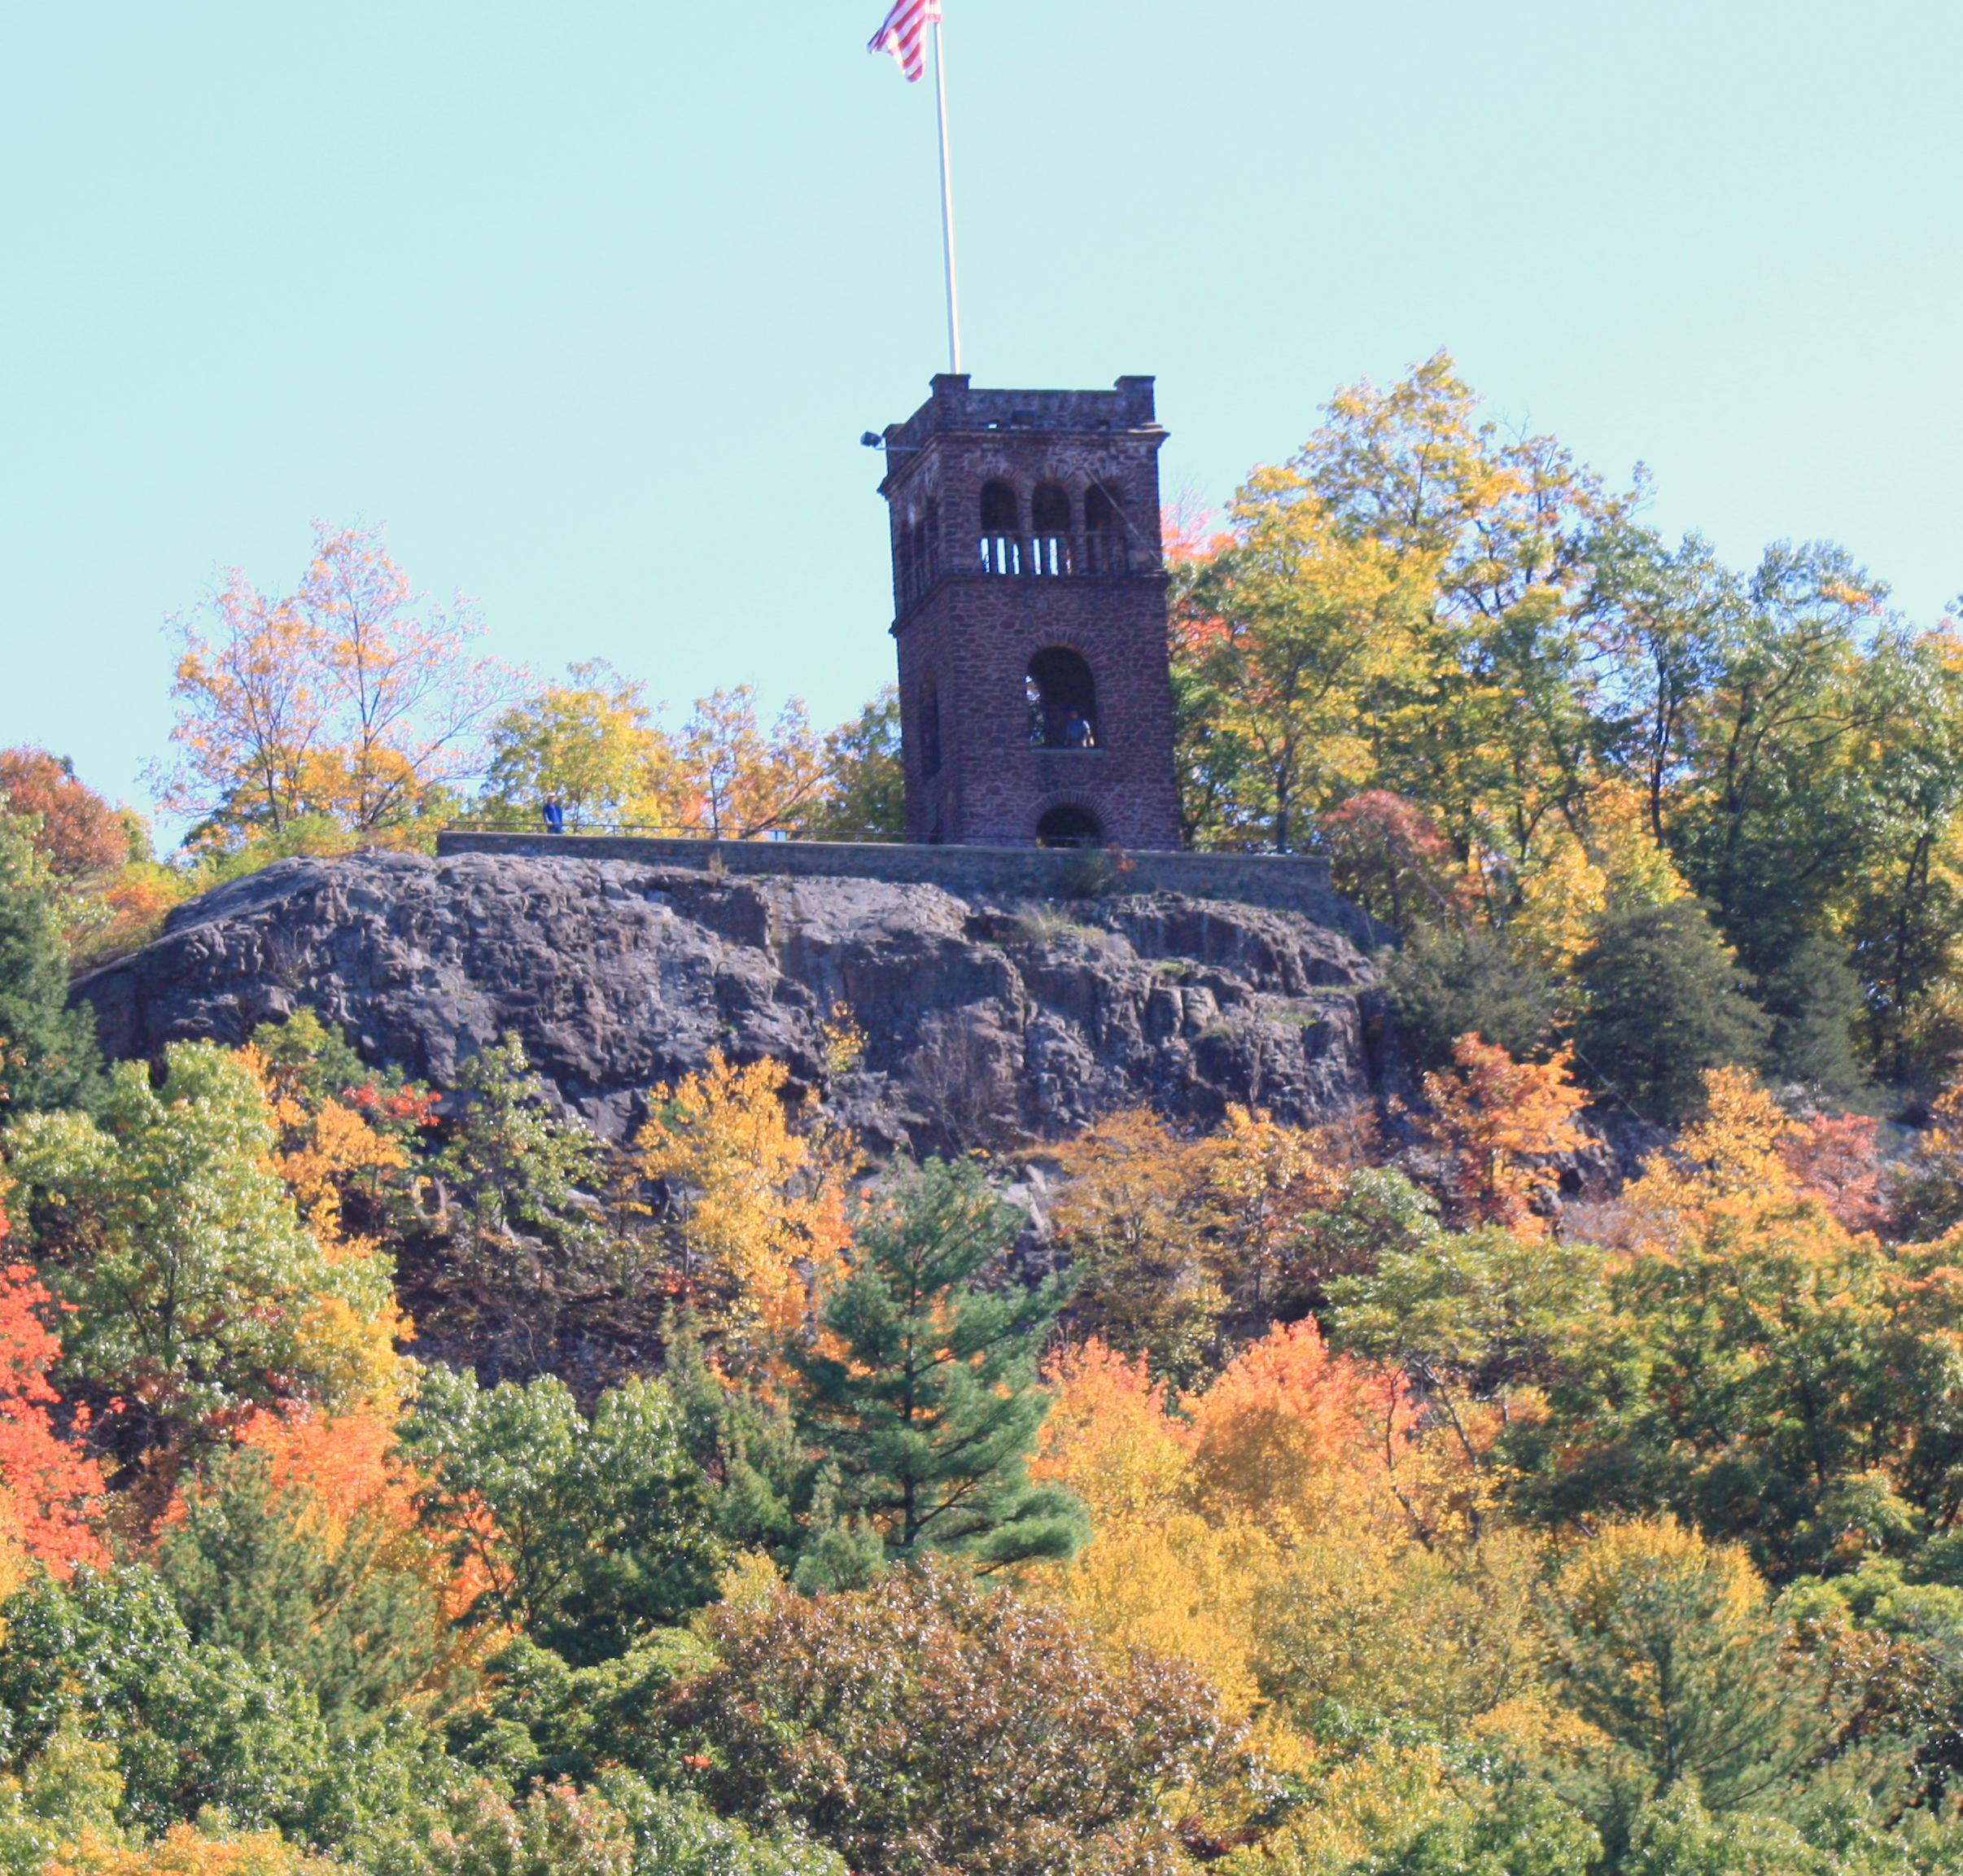 POET'S SEAT TOWER IN FALL.jpg?1408996749